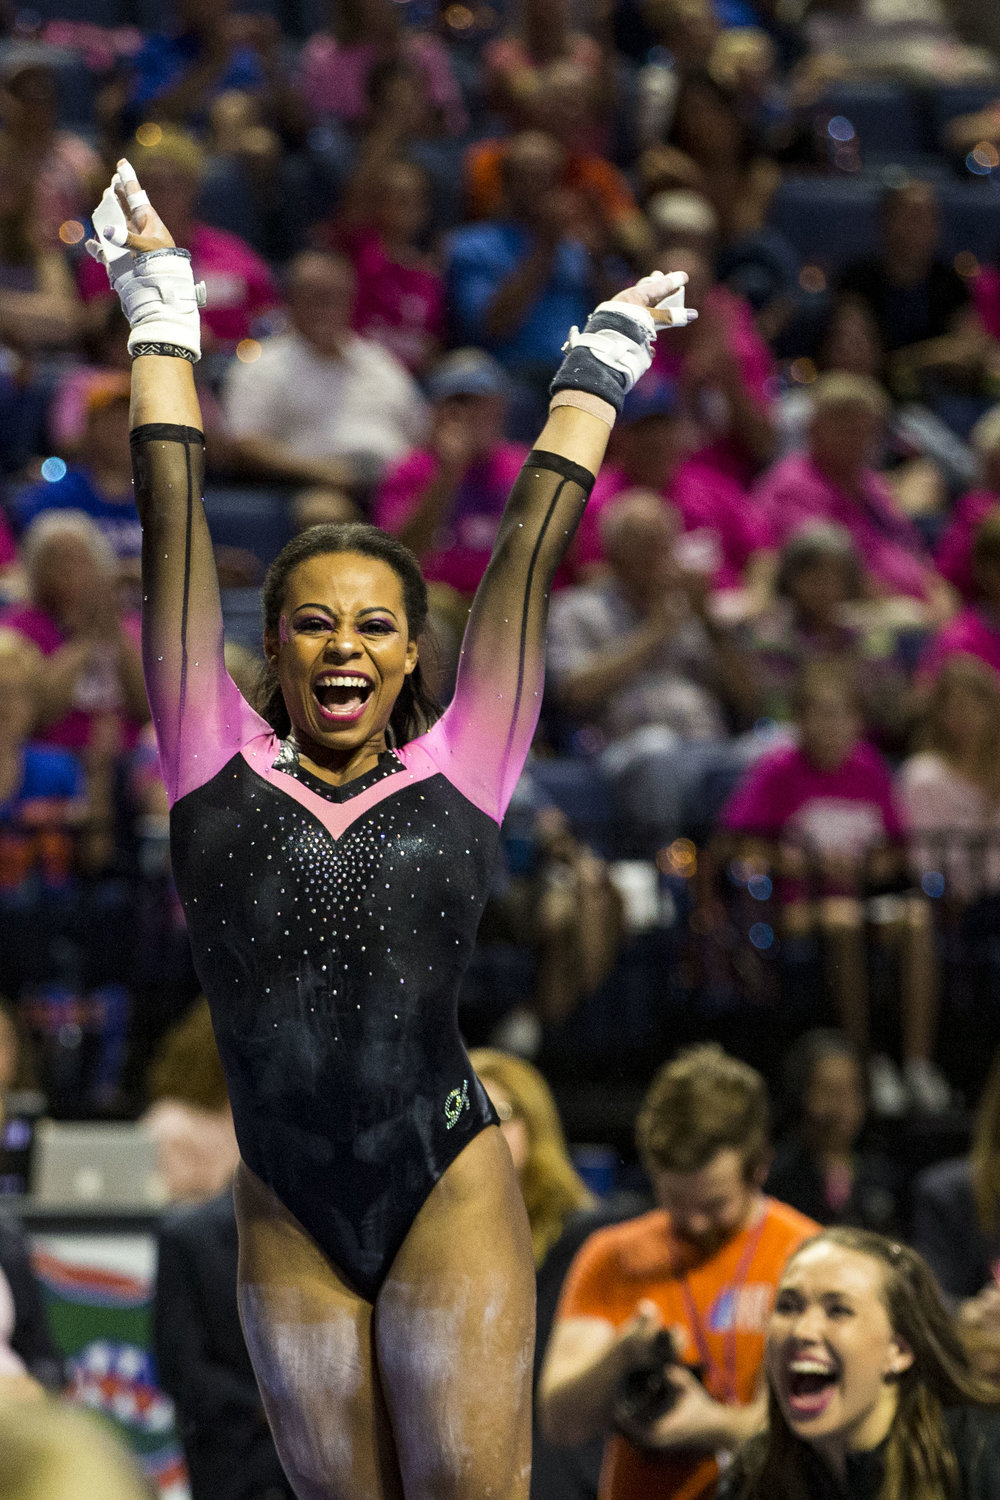 Florida Gator Kennedy Baker celebrates after competing in the uneven bars during the match against Arkansas on February 23, 2018. The Gators beat Arkansas 197.725-196.875.